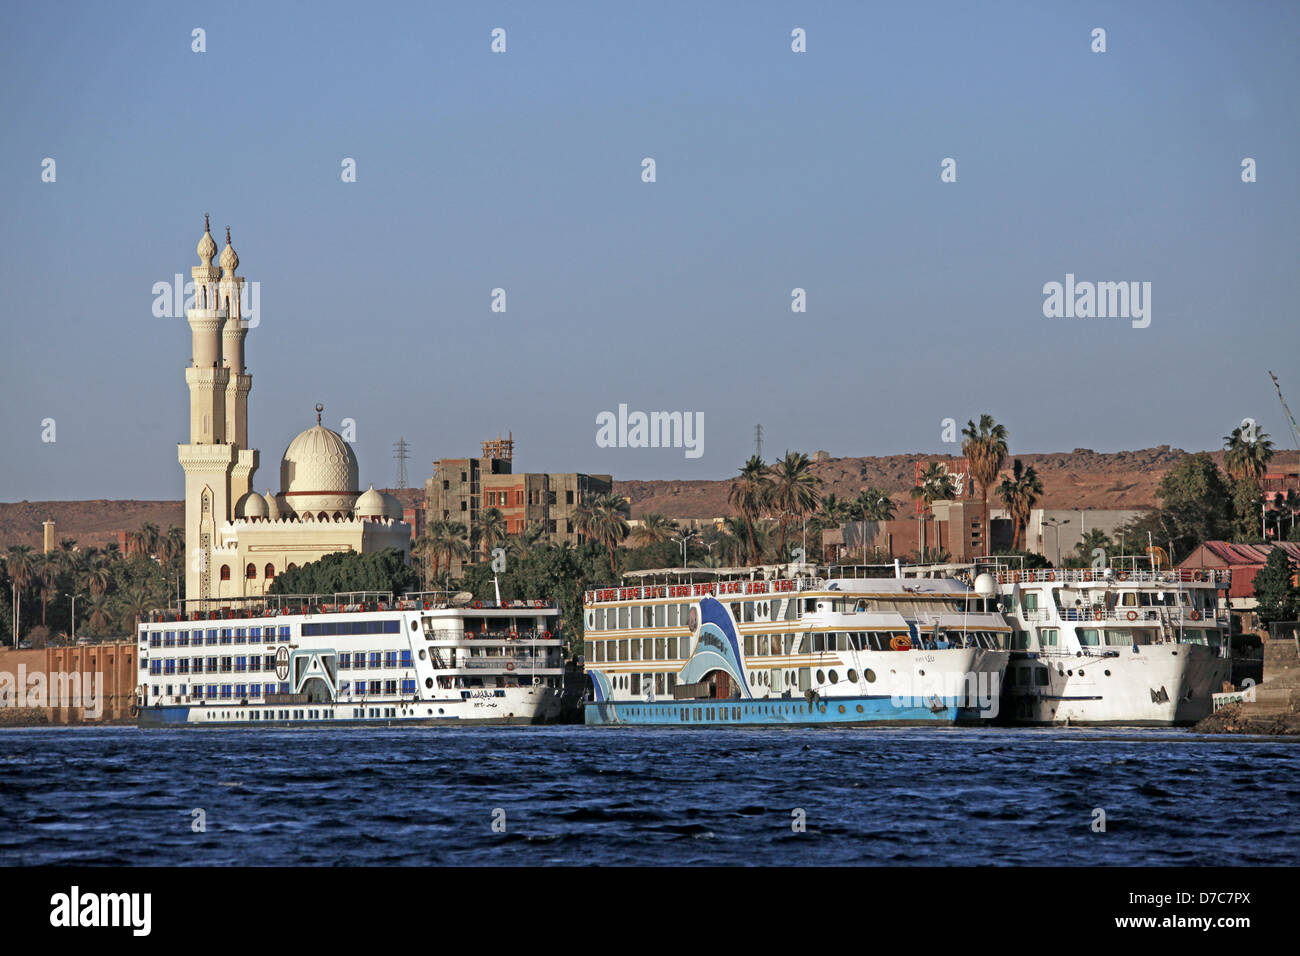 CRUISE LINERS & MOSQUE RIVER NILE ASWAN EGYPT 10 January 2013 - Stock Image